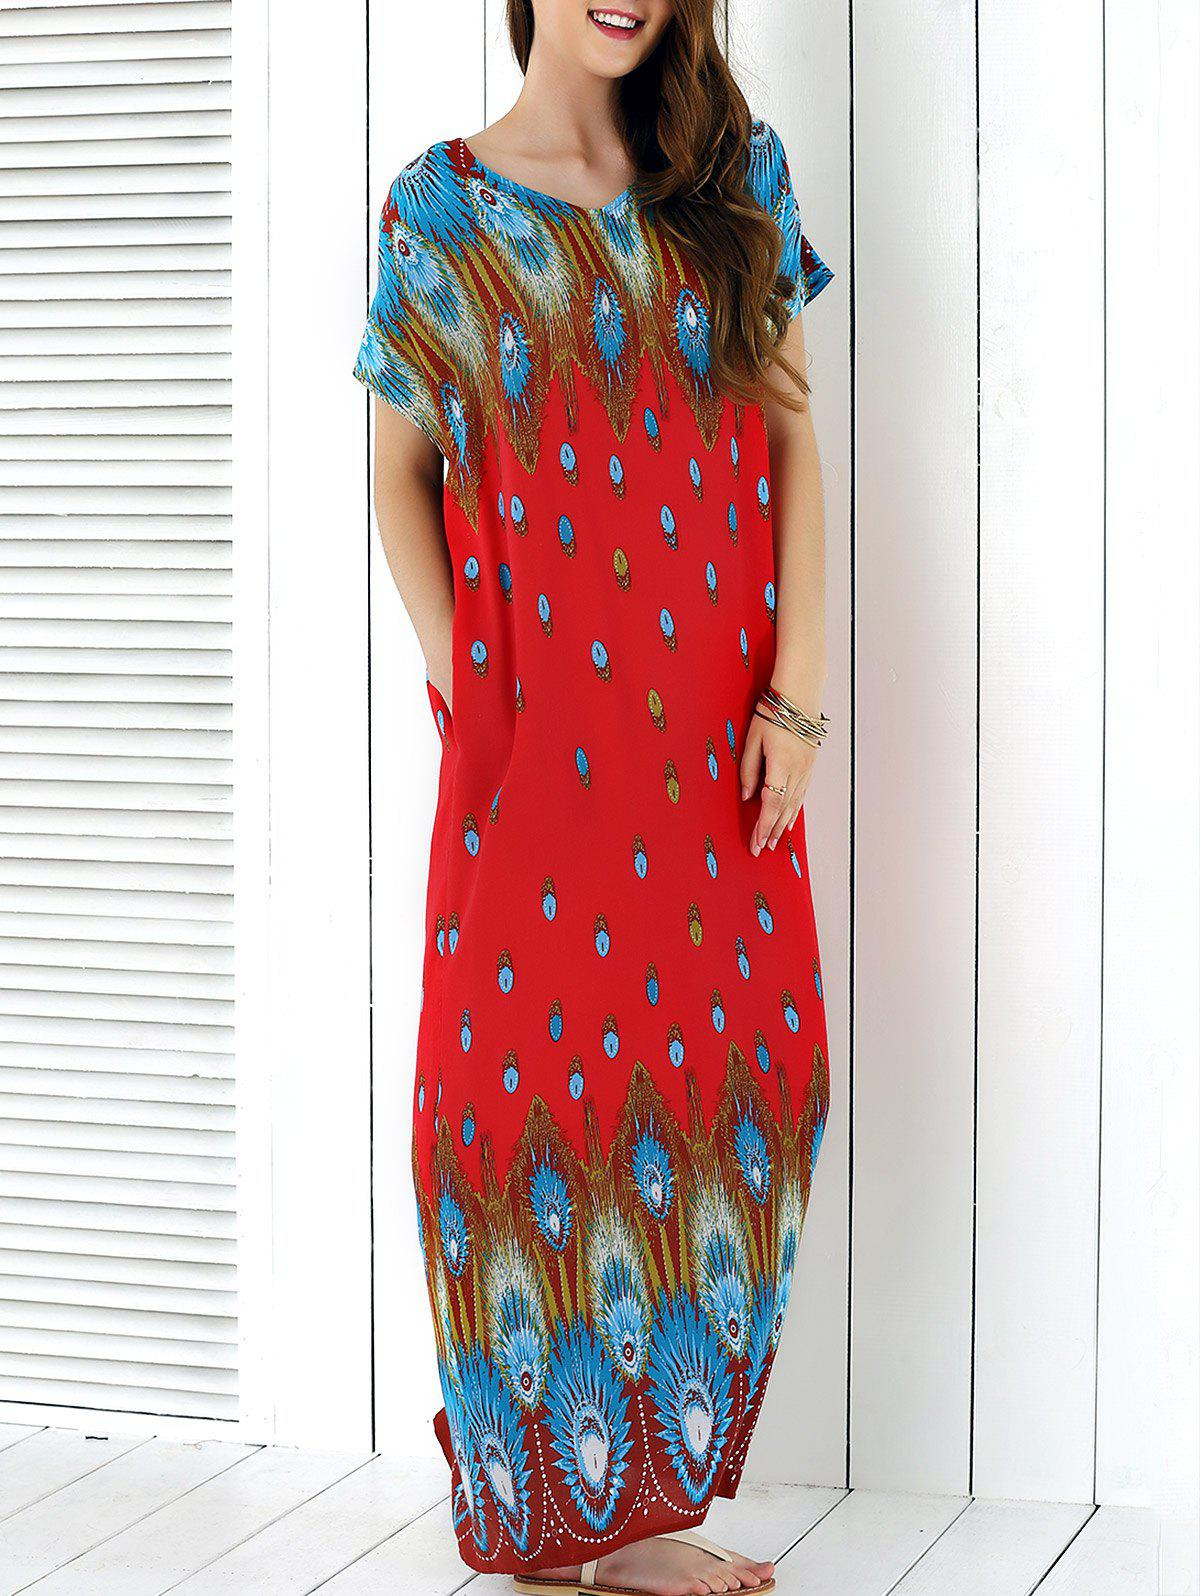 Peacock Tail Print Maxi Dress - RED XL